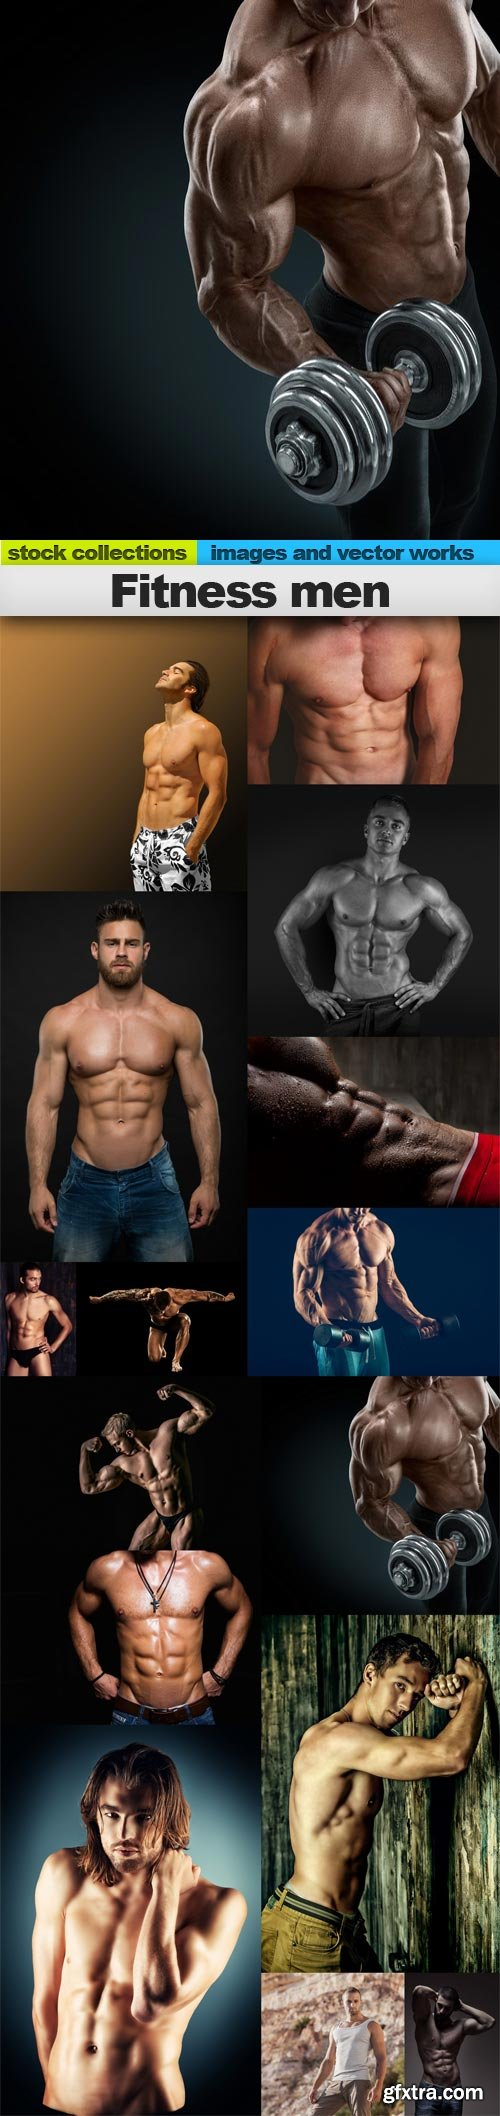 Fitness men, 15 x UHQ JPEG